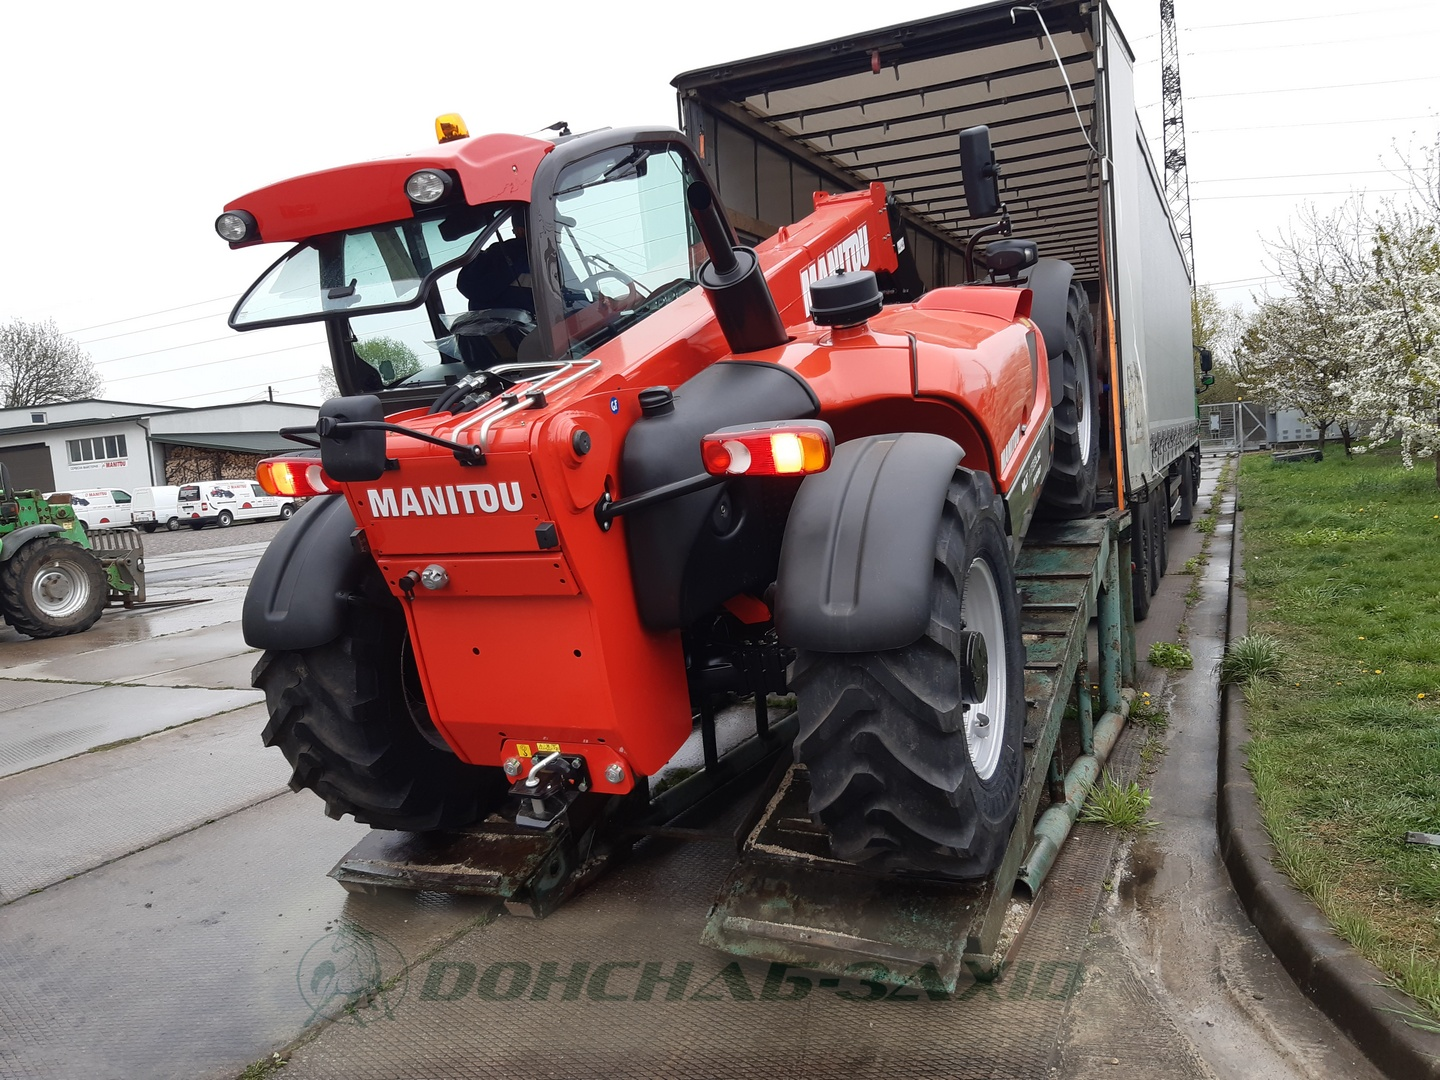 Supply of MANITOU equipment